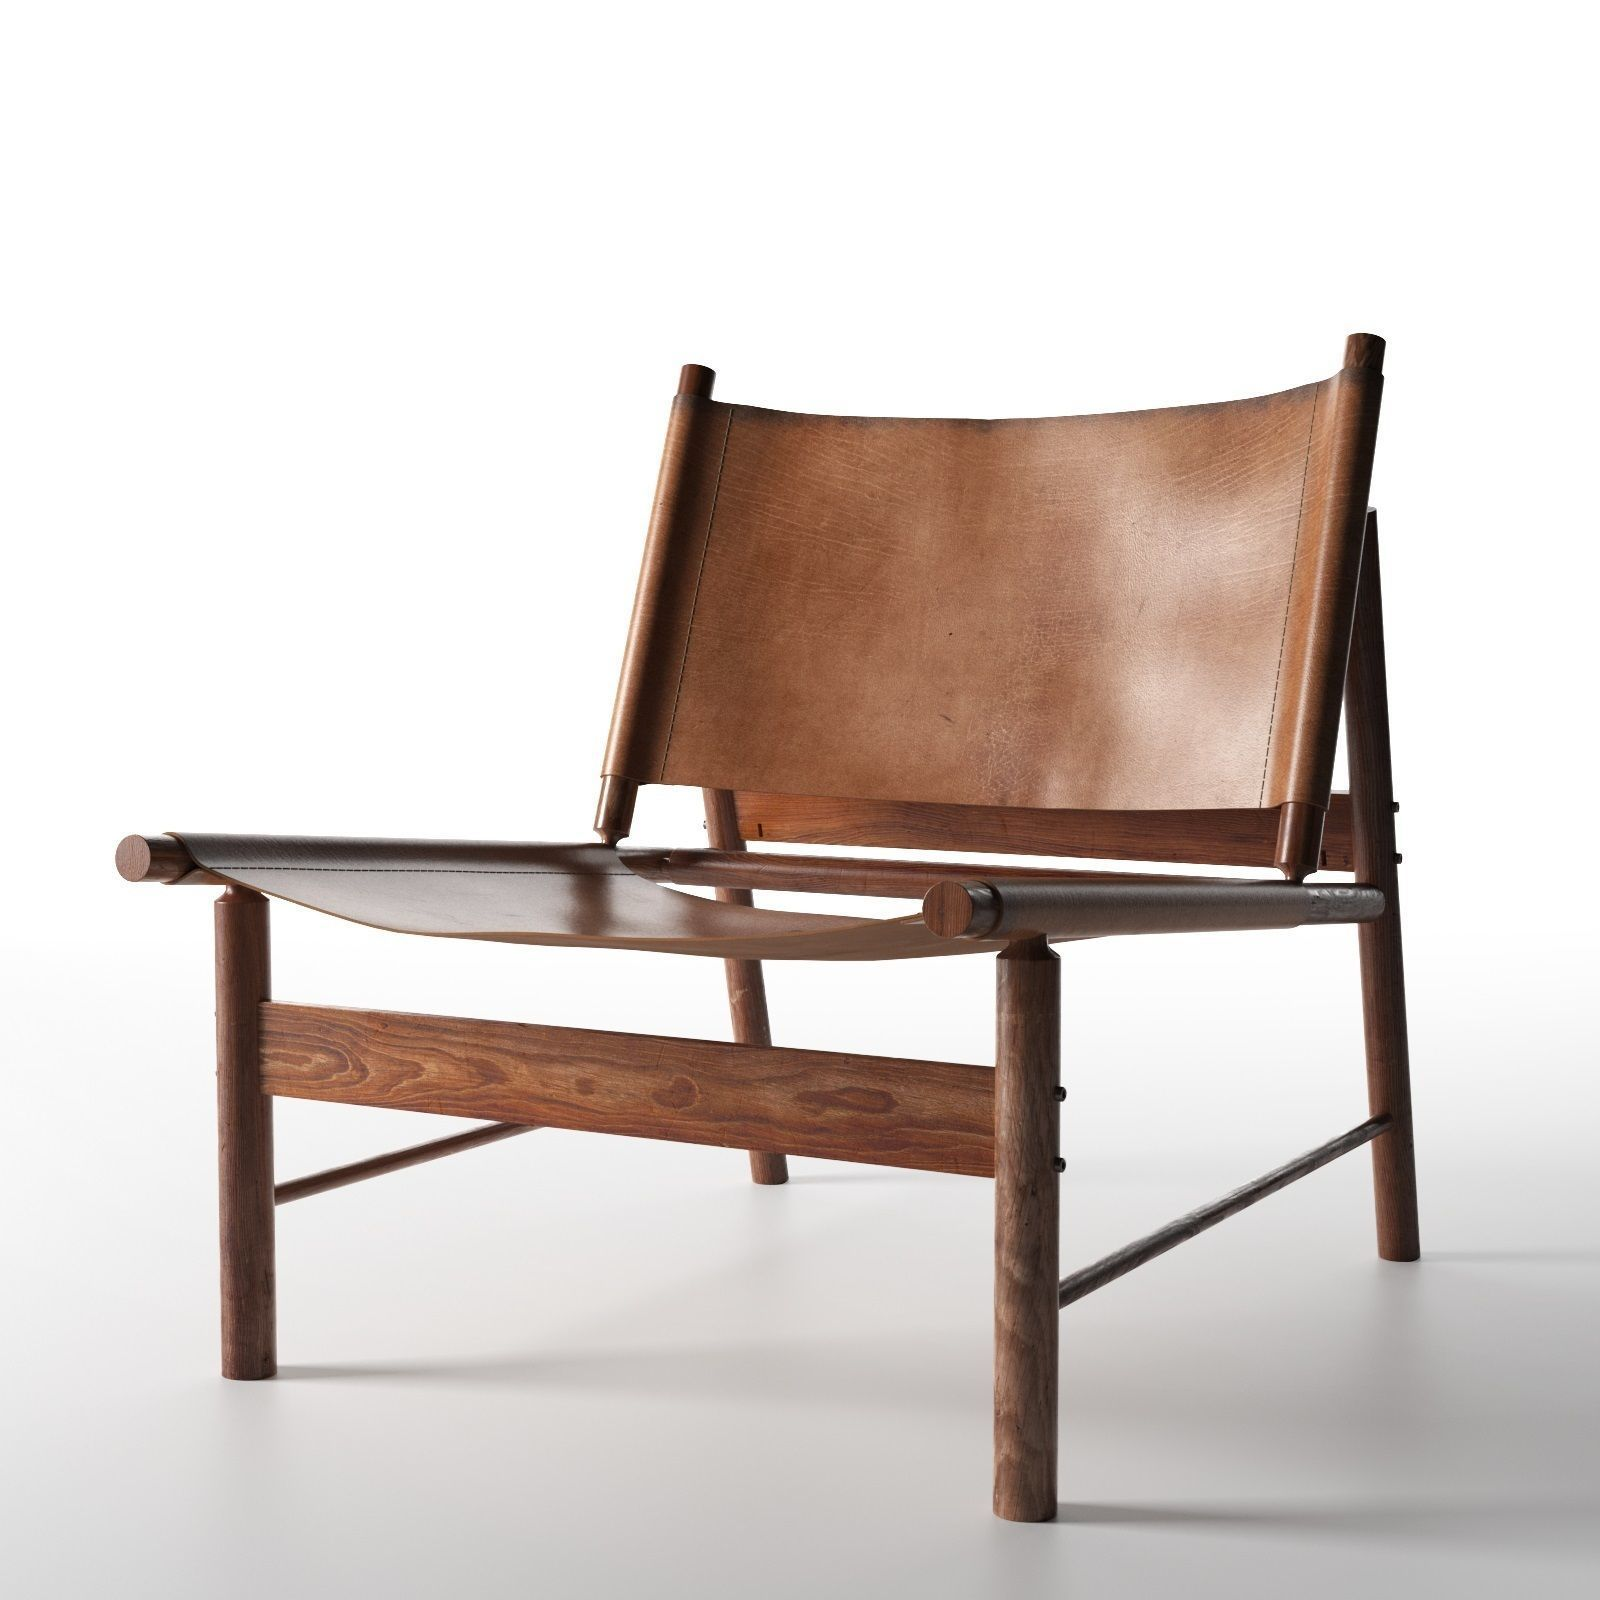 Lounge Chair by Jorge Zalszupin